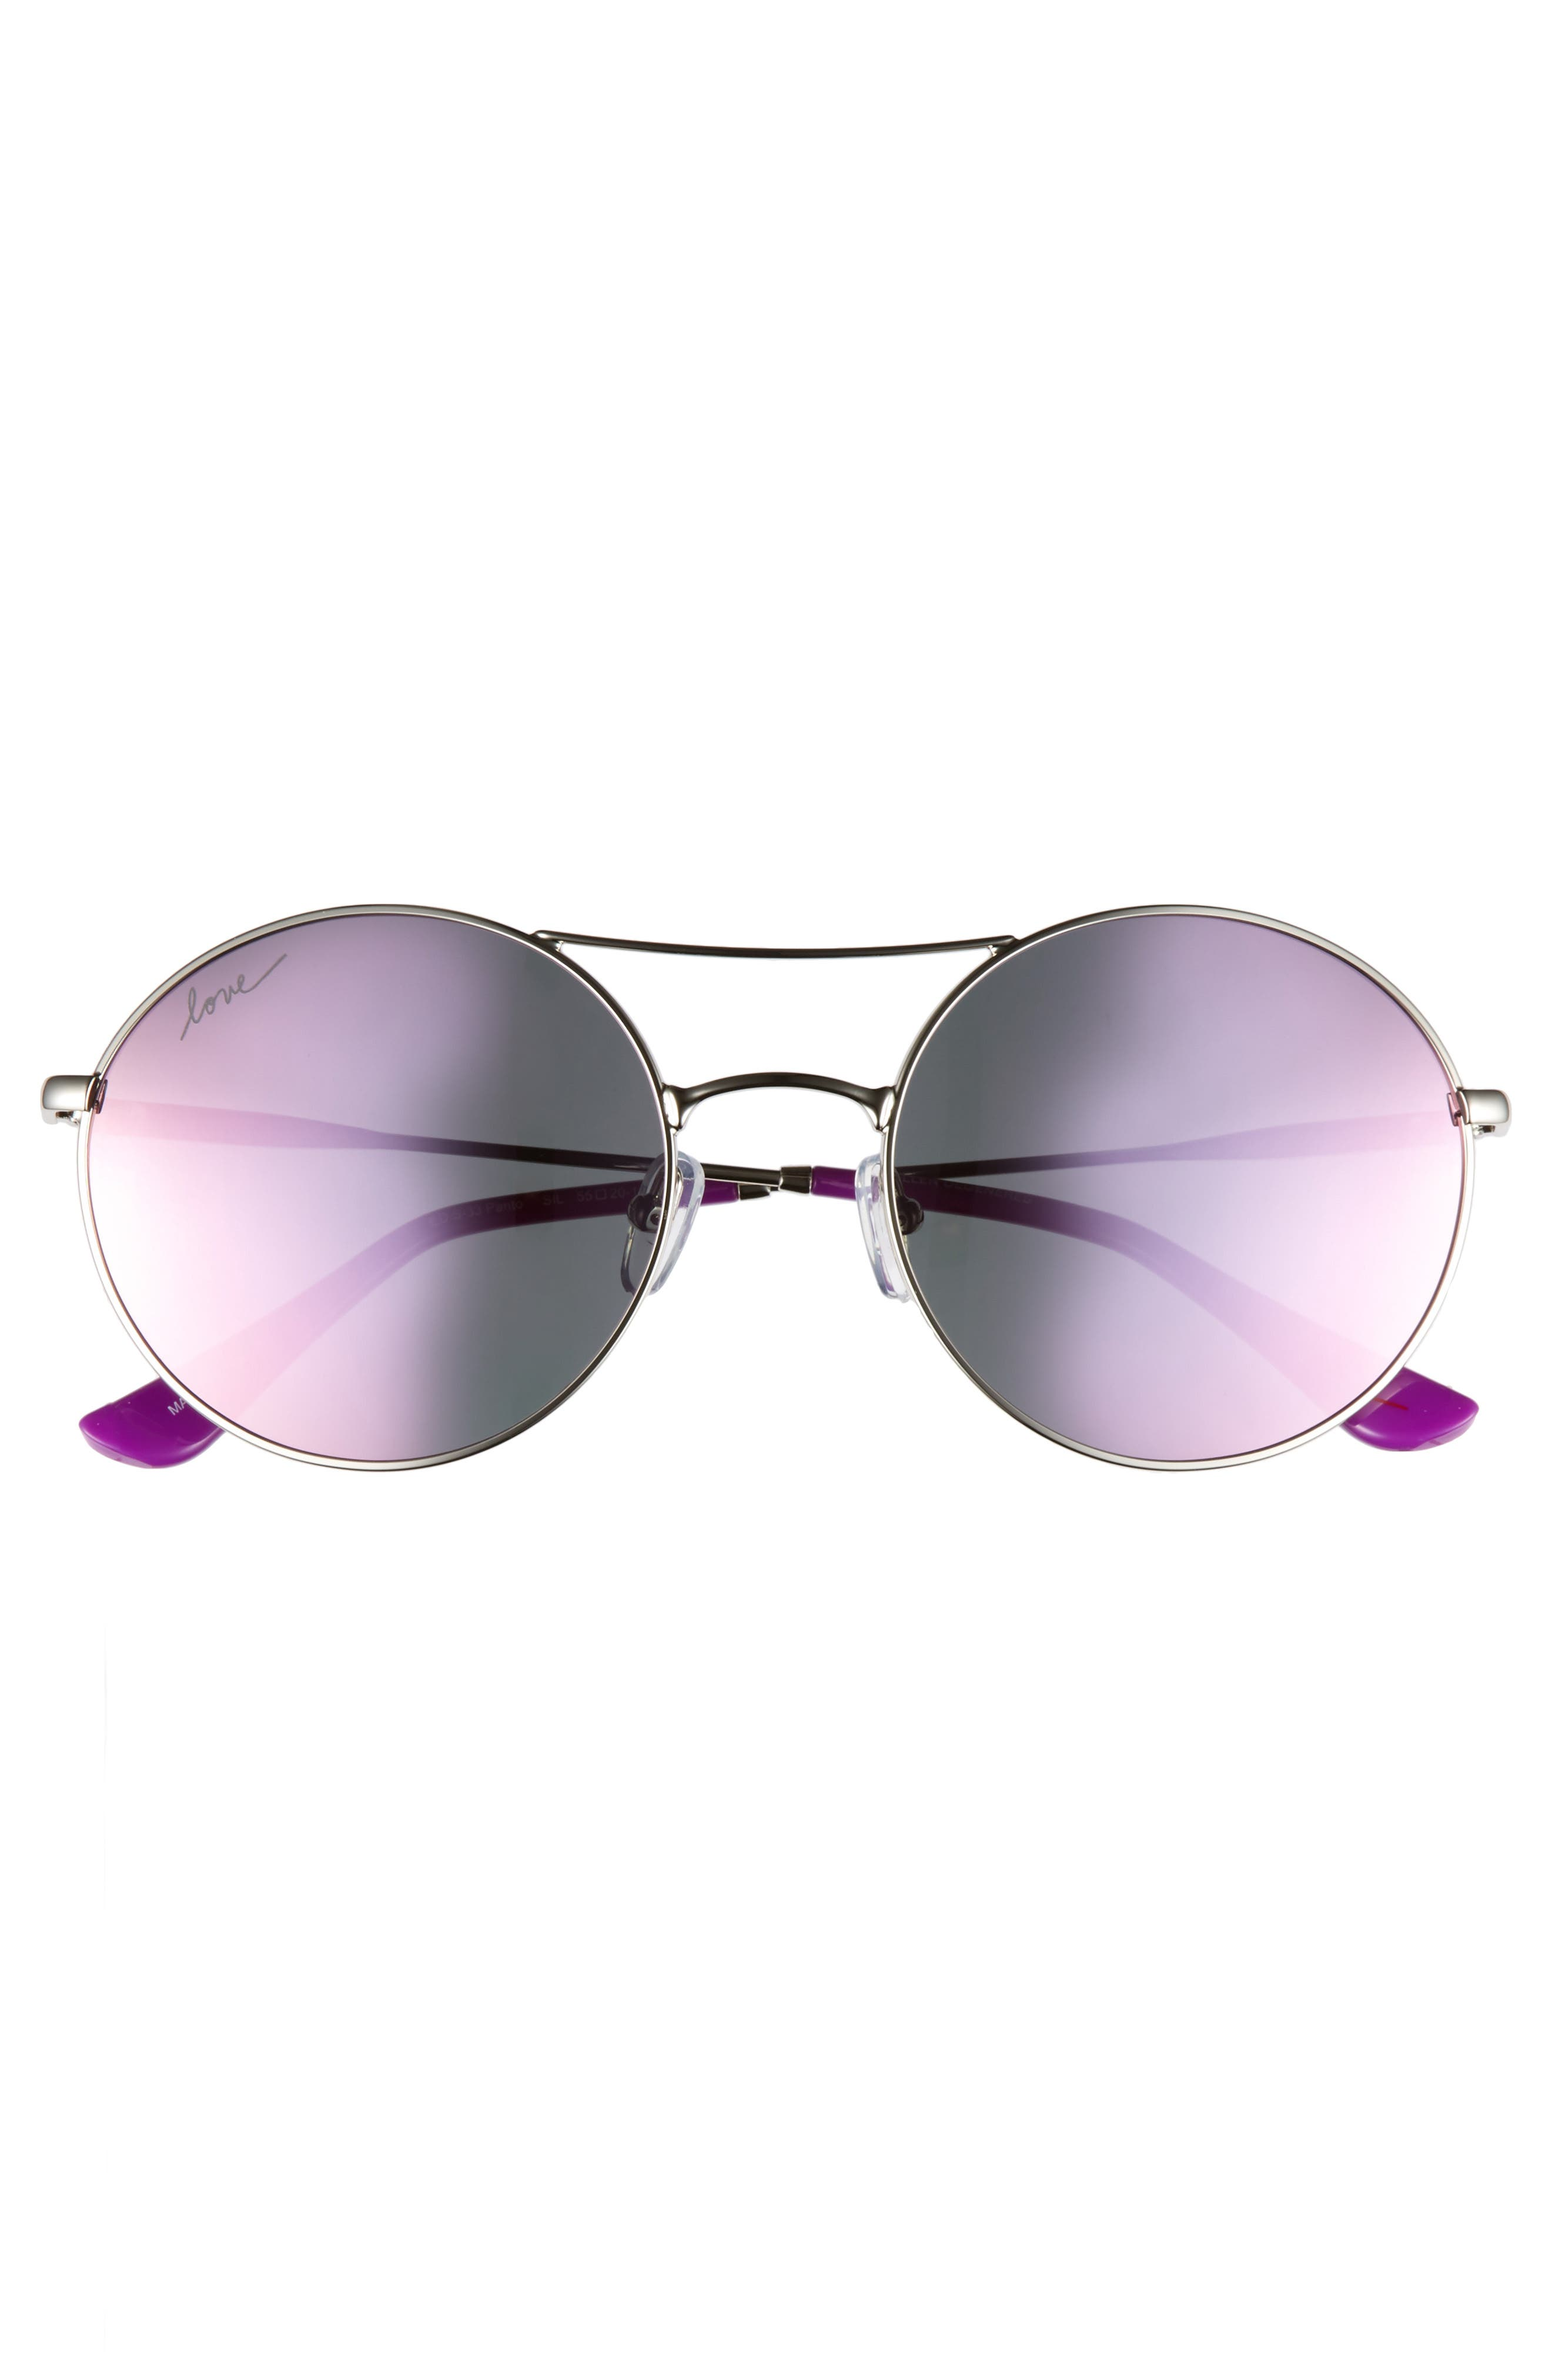 55mm Round Sunglasses,                             Alternate thumbnail 3, color,                             SILVER